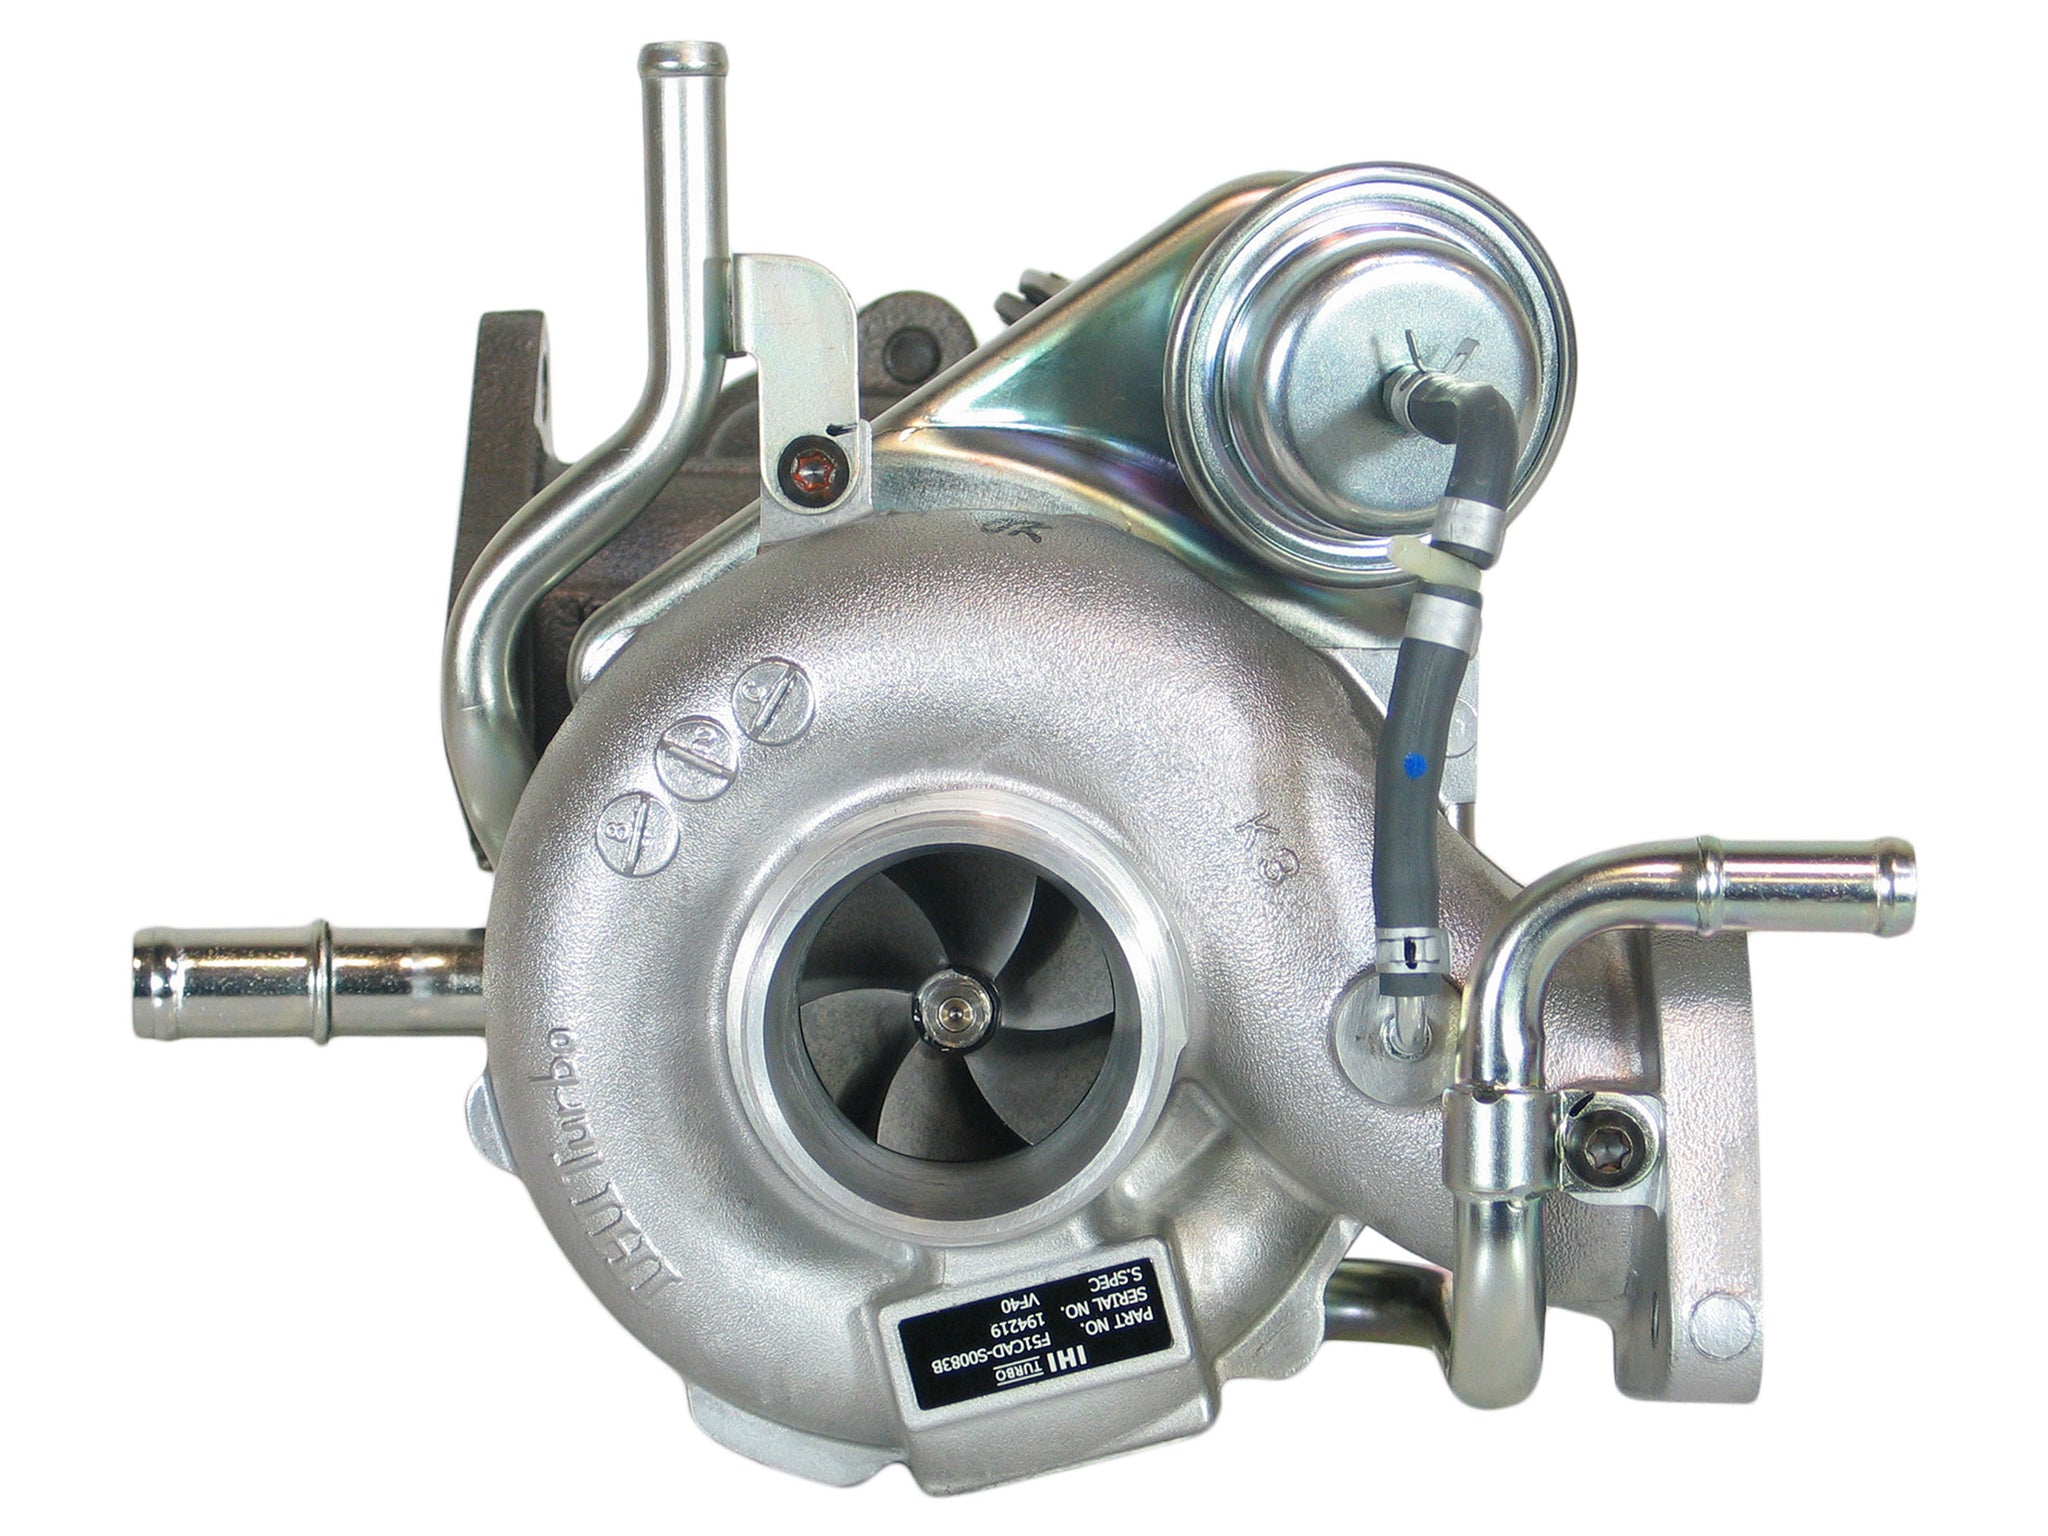 Subaru Legacy GT Outback XT VC430083 VF40 Turbo NEW OEM IHI RHF5H Turbocharger